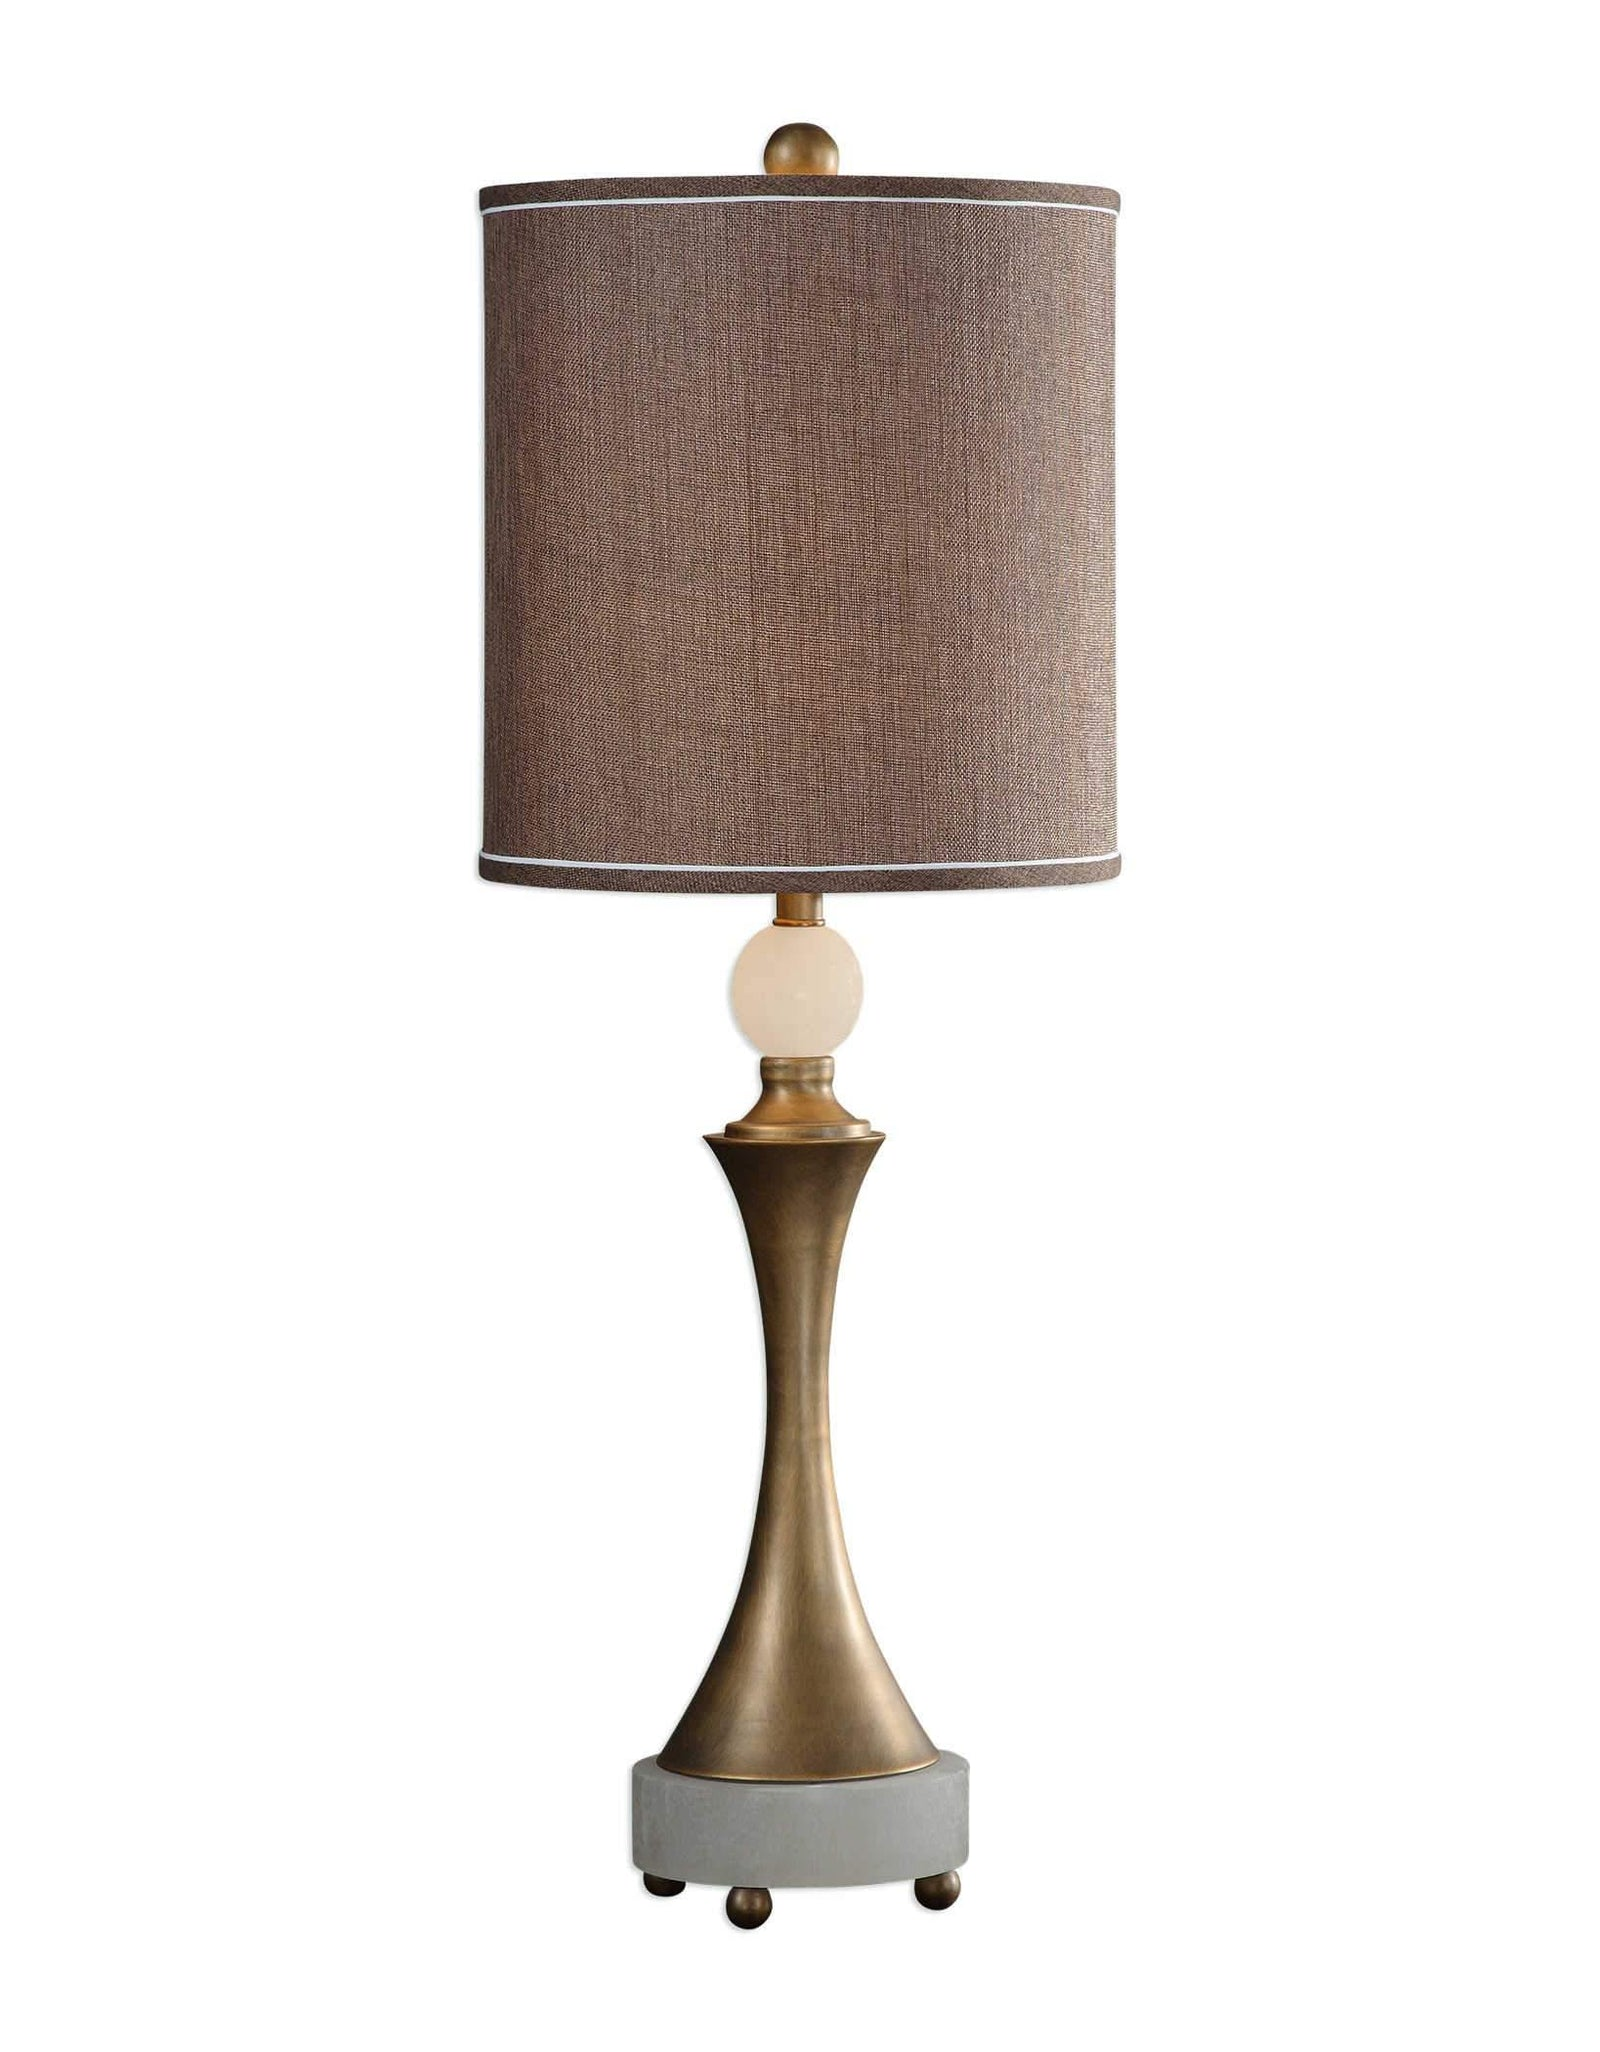 Nadetta Lamp (R29385-1) - Mindy Brownes Interiors - Genesis Fine Arts